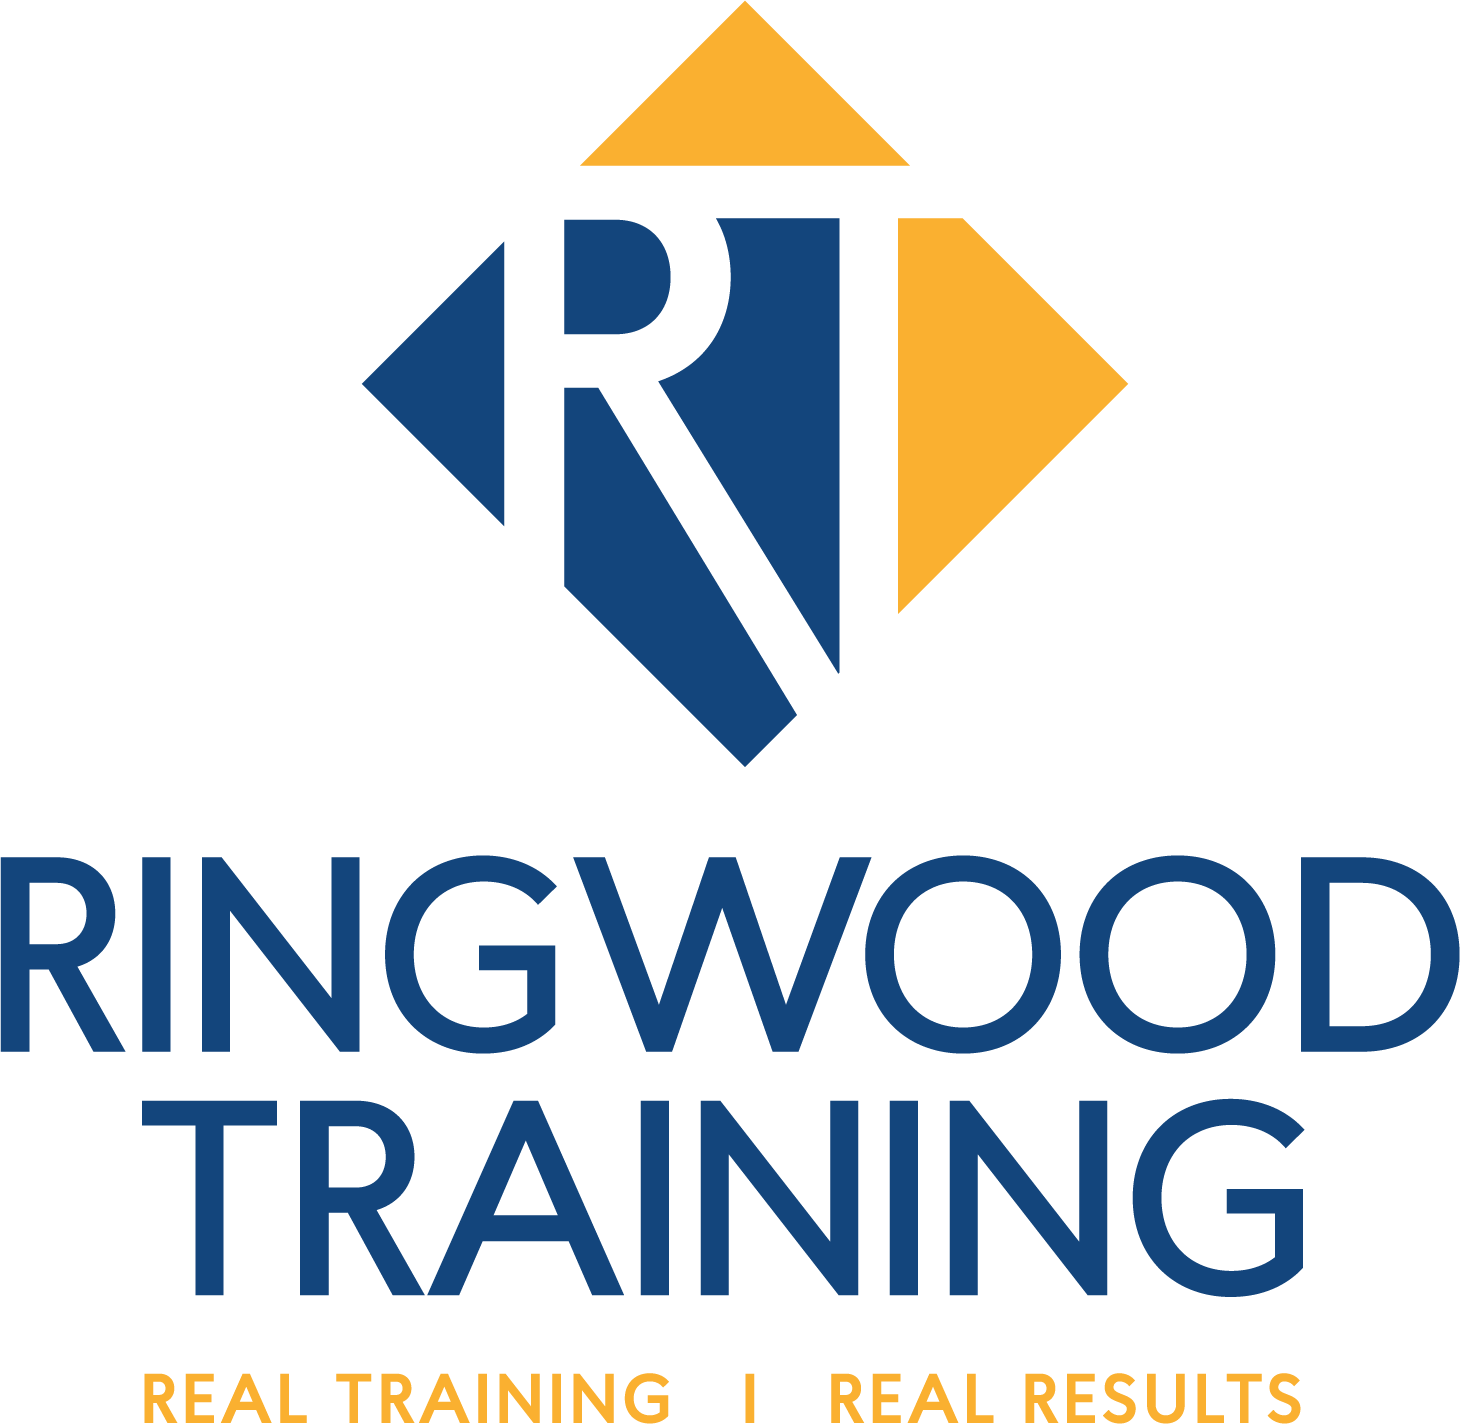 Student Handbook - Ringwood Training - RT